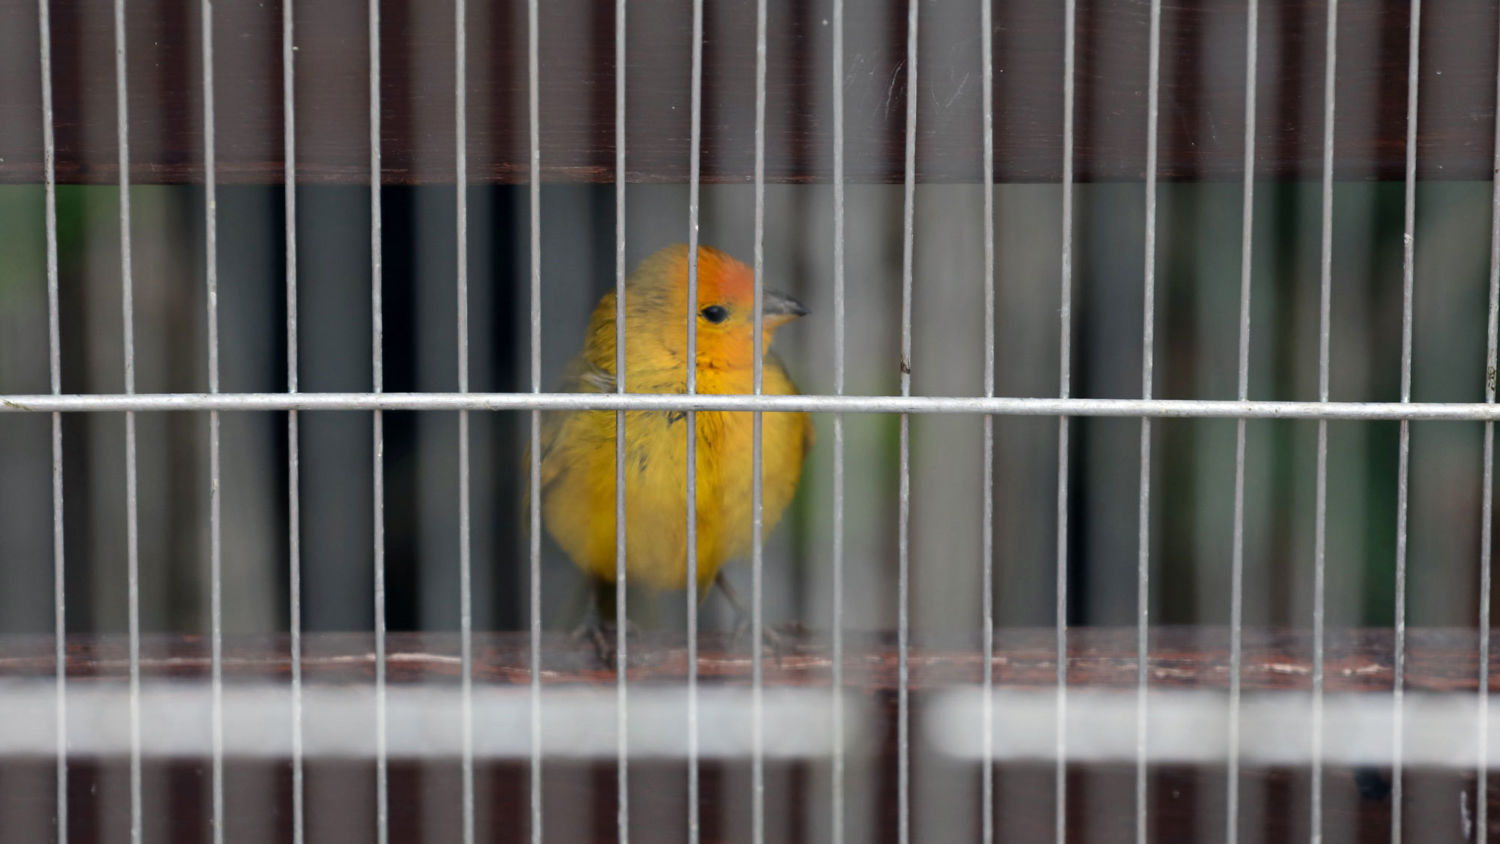 An Illicit Trade in Brazil Is Sending Tiny Songbirds to Their Deaths